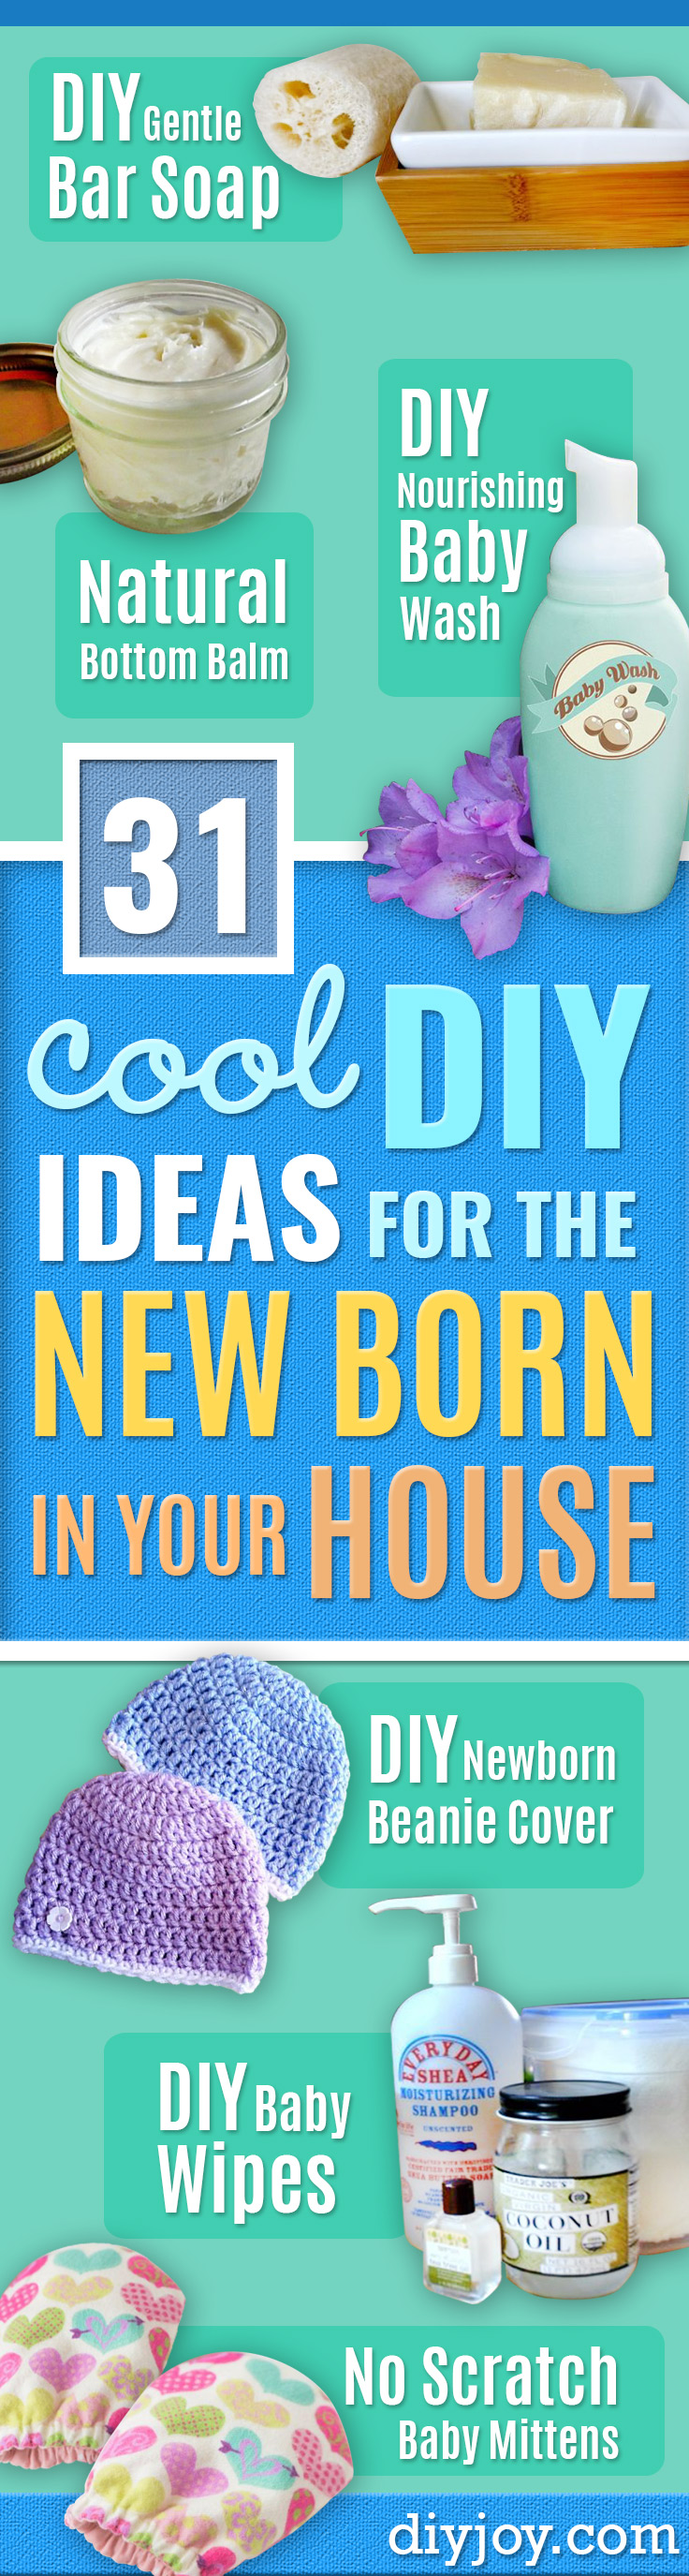 DIY Ideas for Newborn - Do It Yourself Projects for the New Baby Boy or Girl - Nursery and Room Decor, Gear and Products, Safety Ideas and Other Practical Items Make Great DIY Baby Gifts